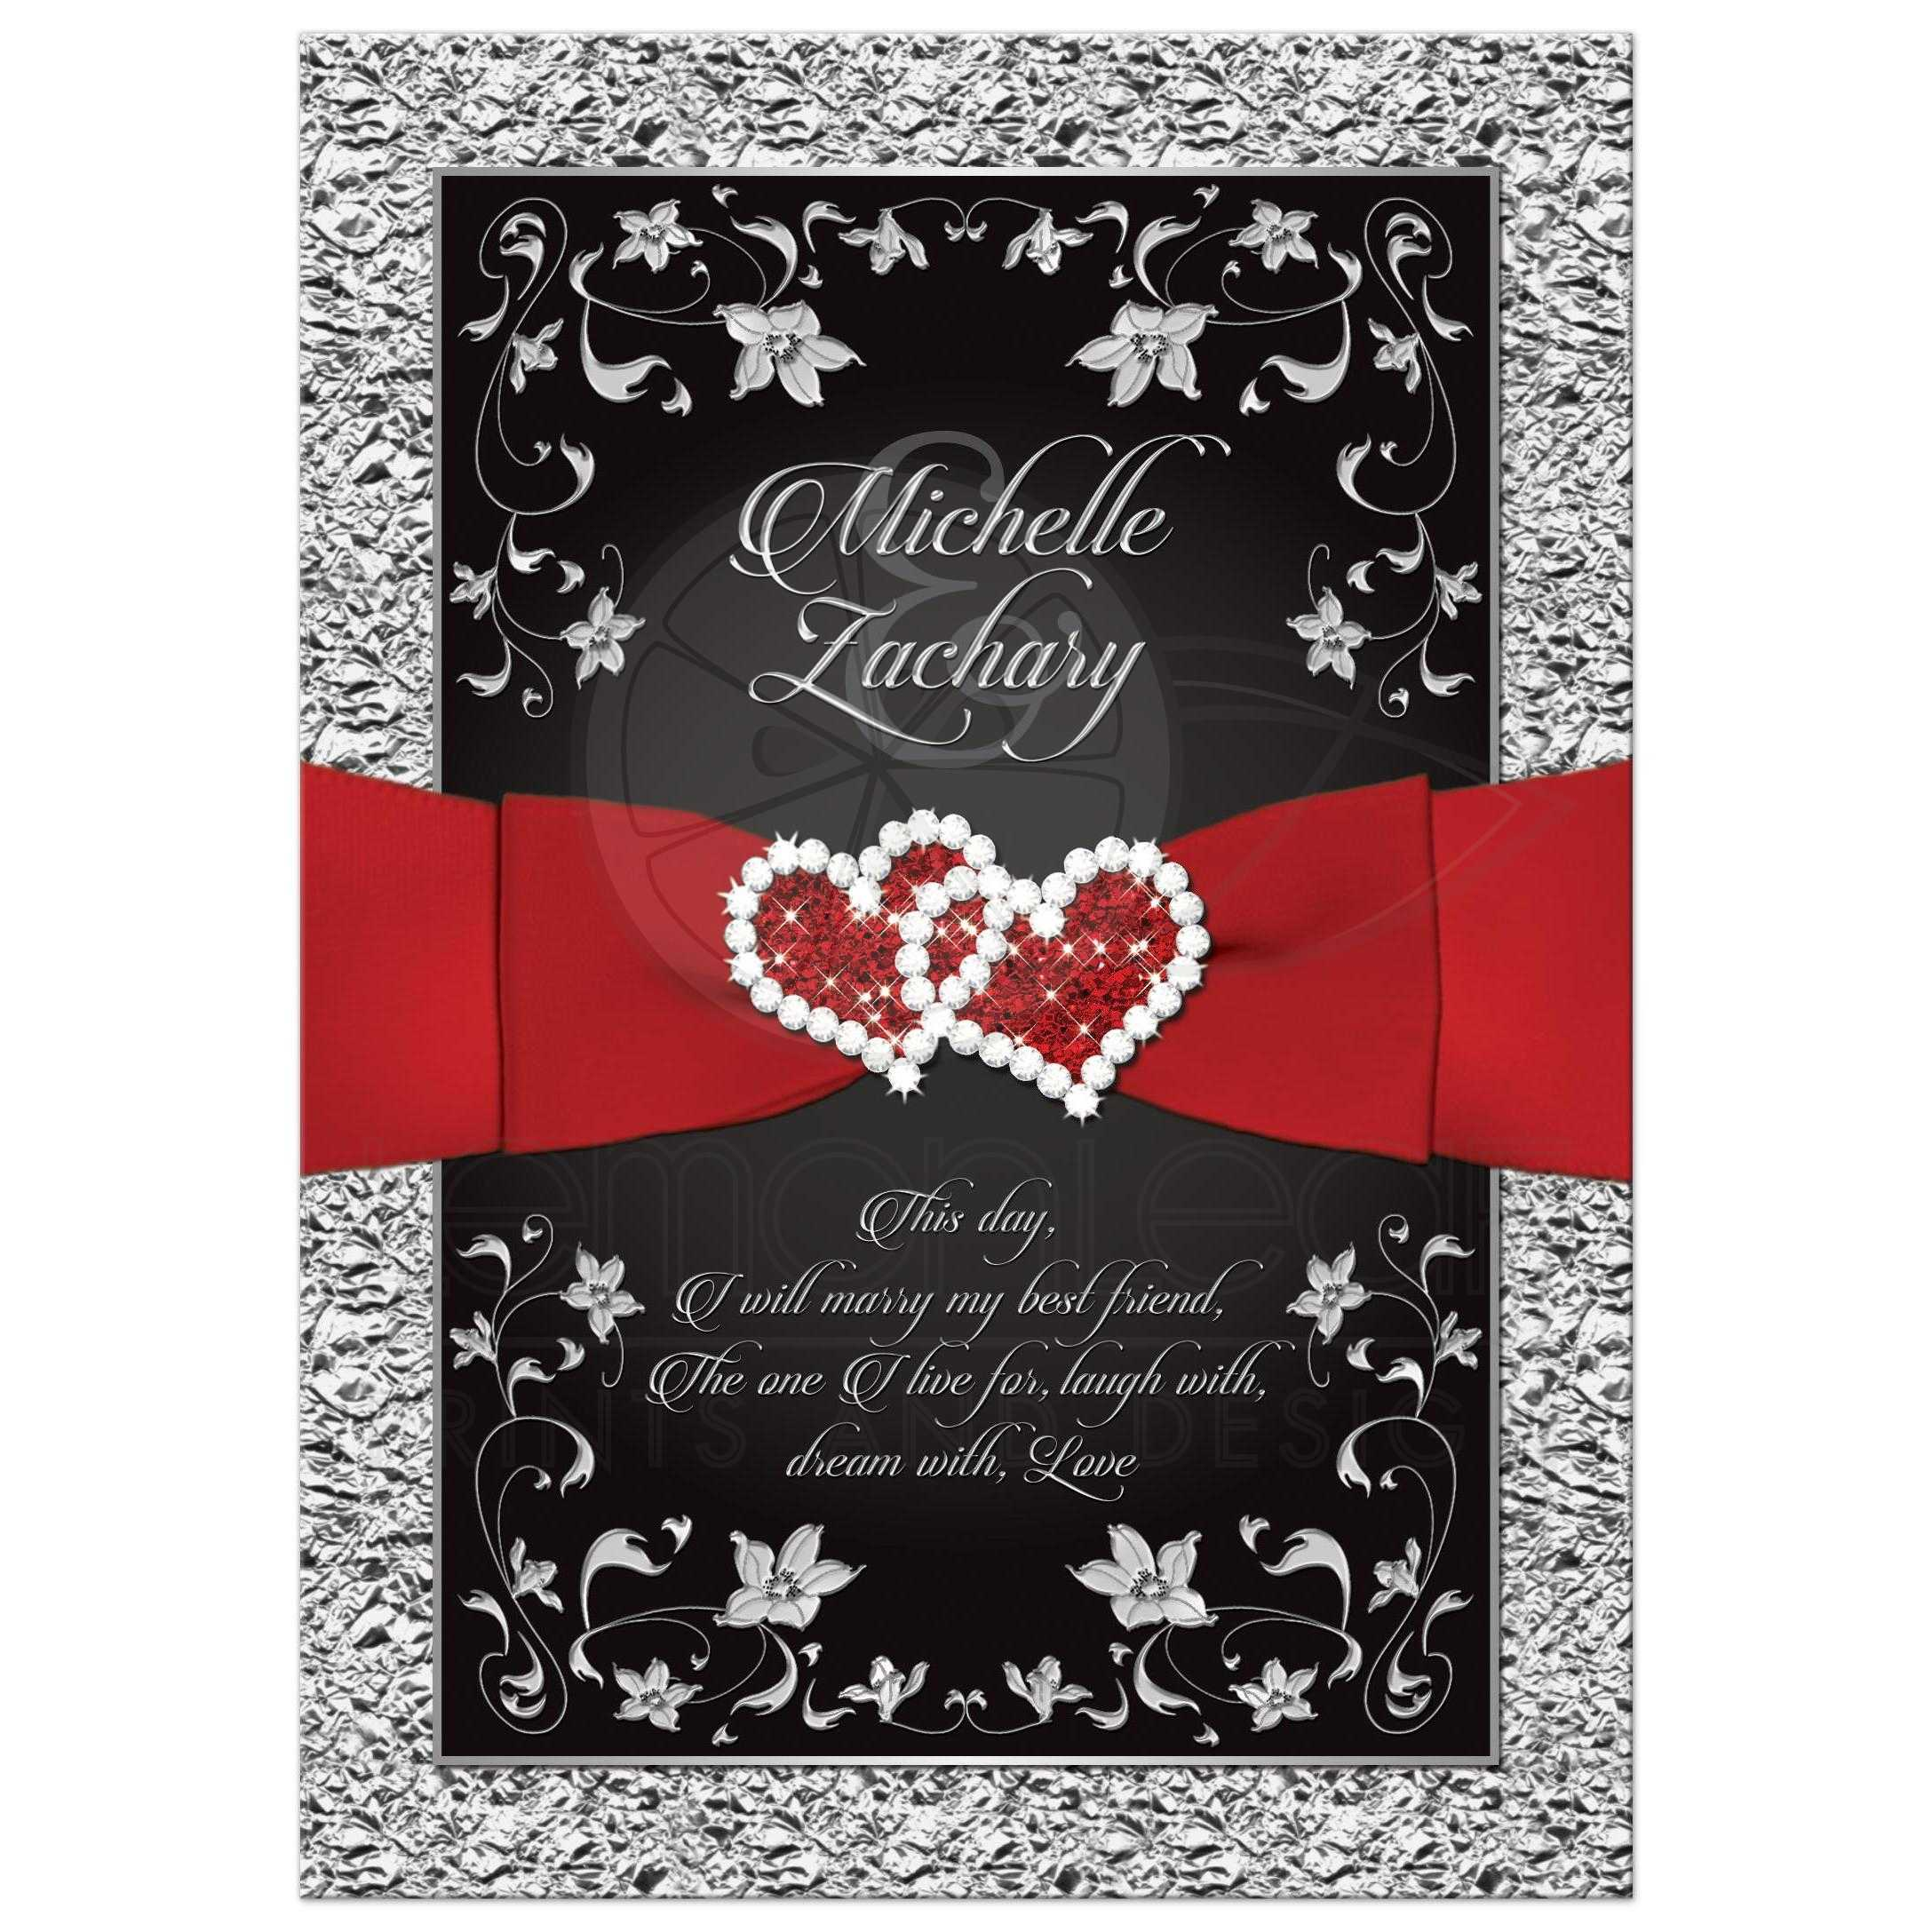 Captivating Romantic Black And Silver Wedding Invitation With Red Love Hearts ... Home Design Ideas